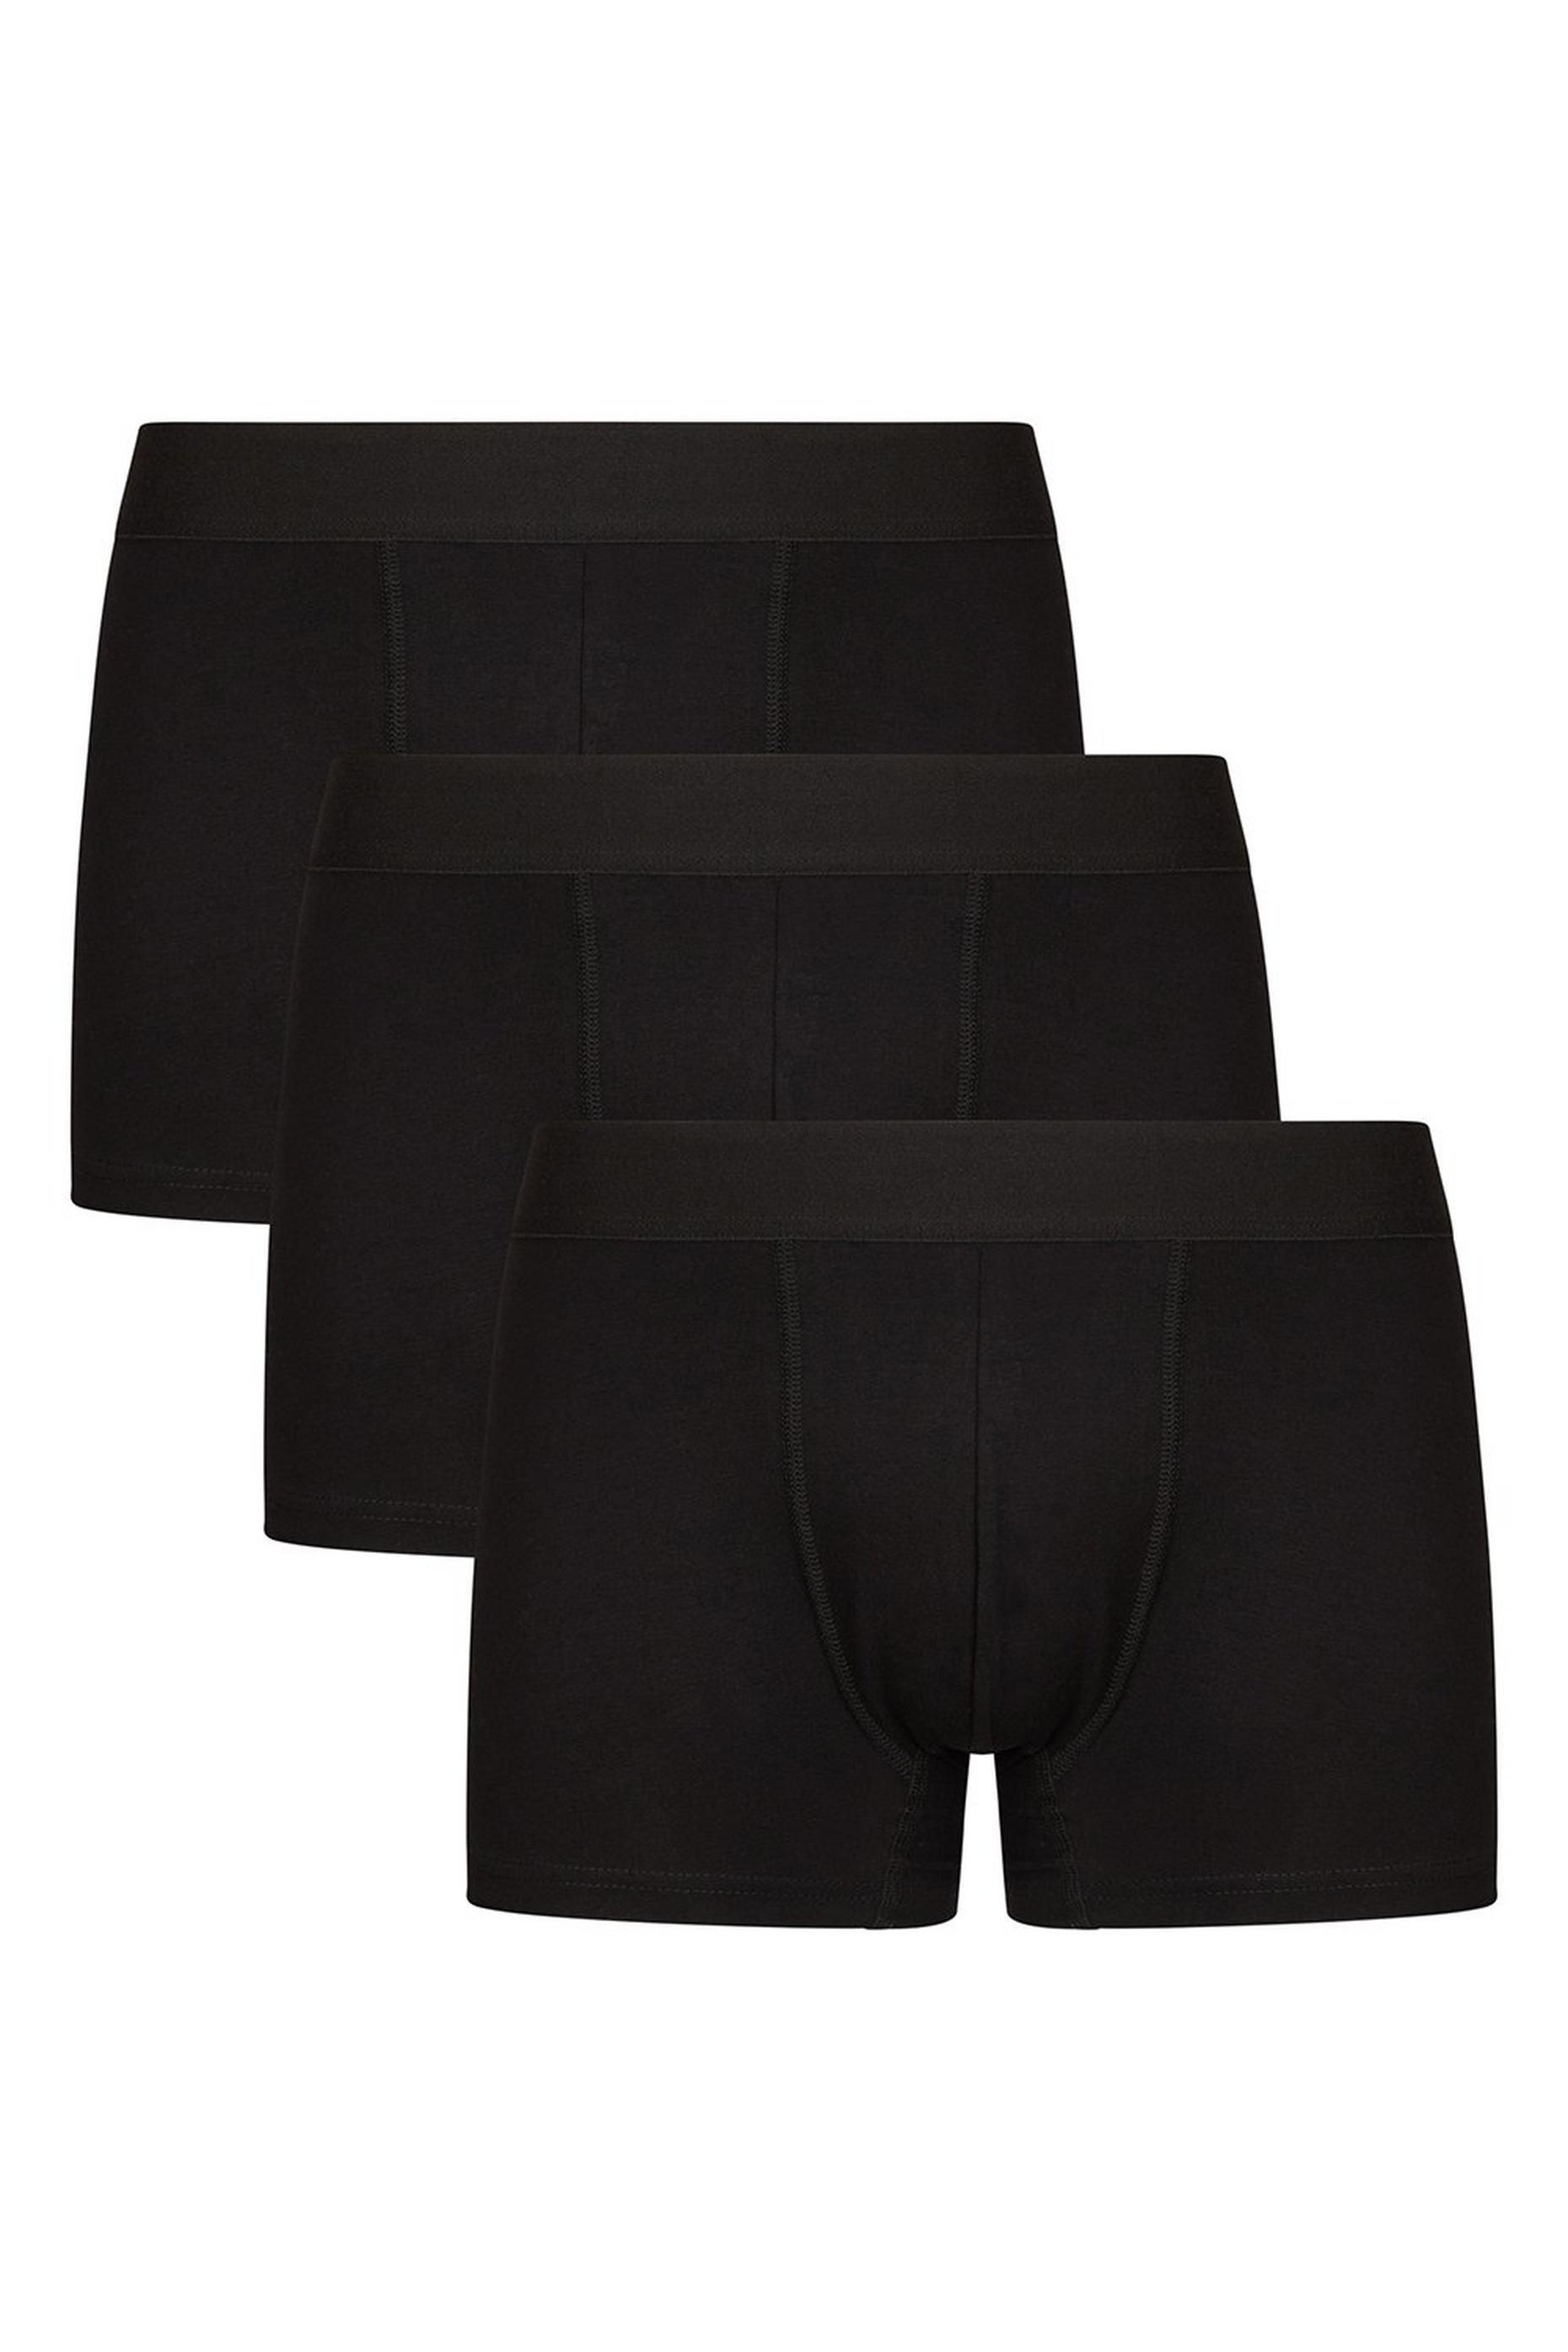 3 Pack Black Organic Cotton Trunks